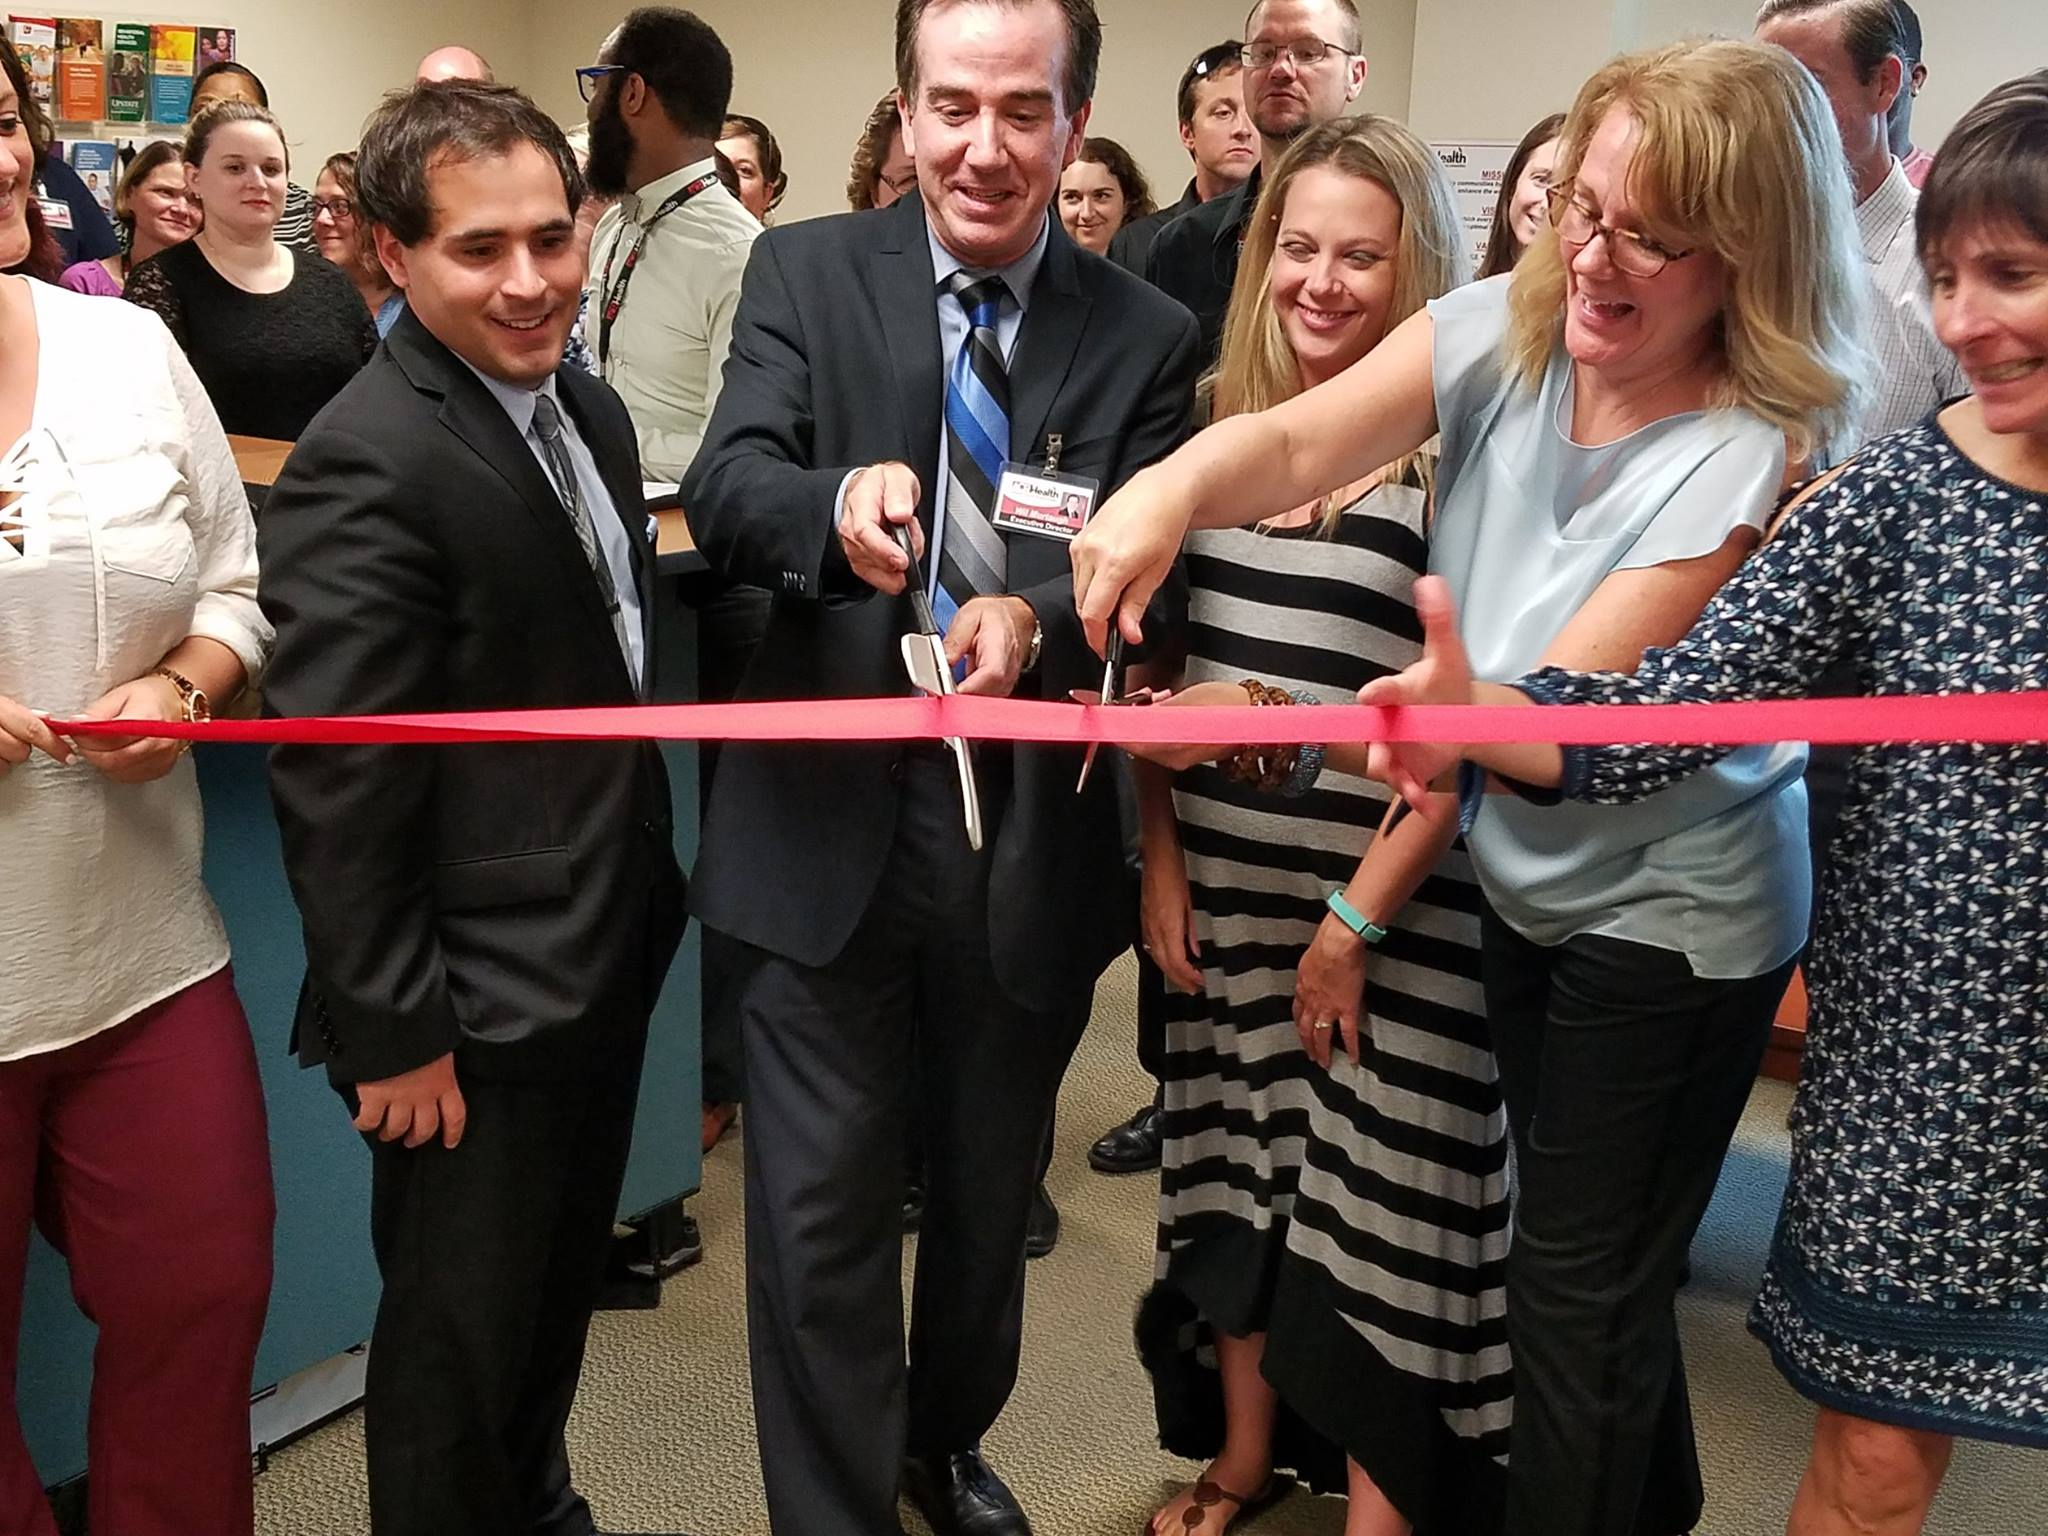 ACR Health opens new office, announces HIV reduction in NYS